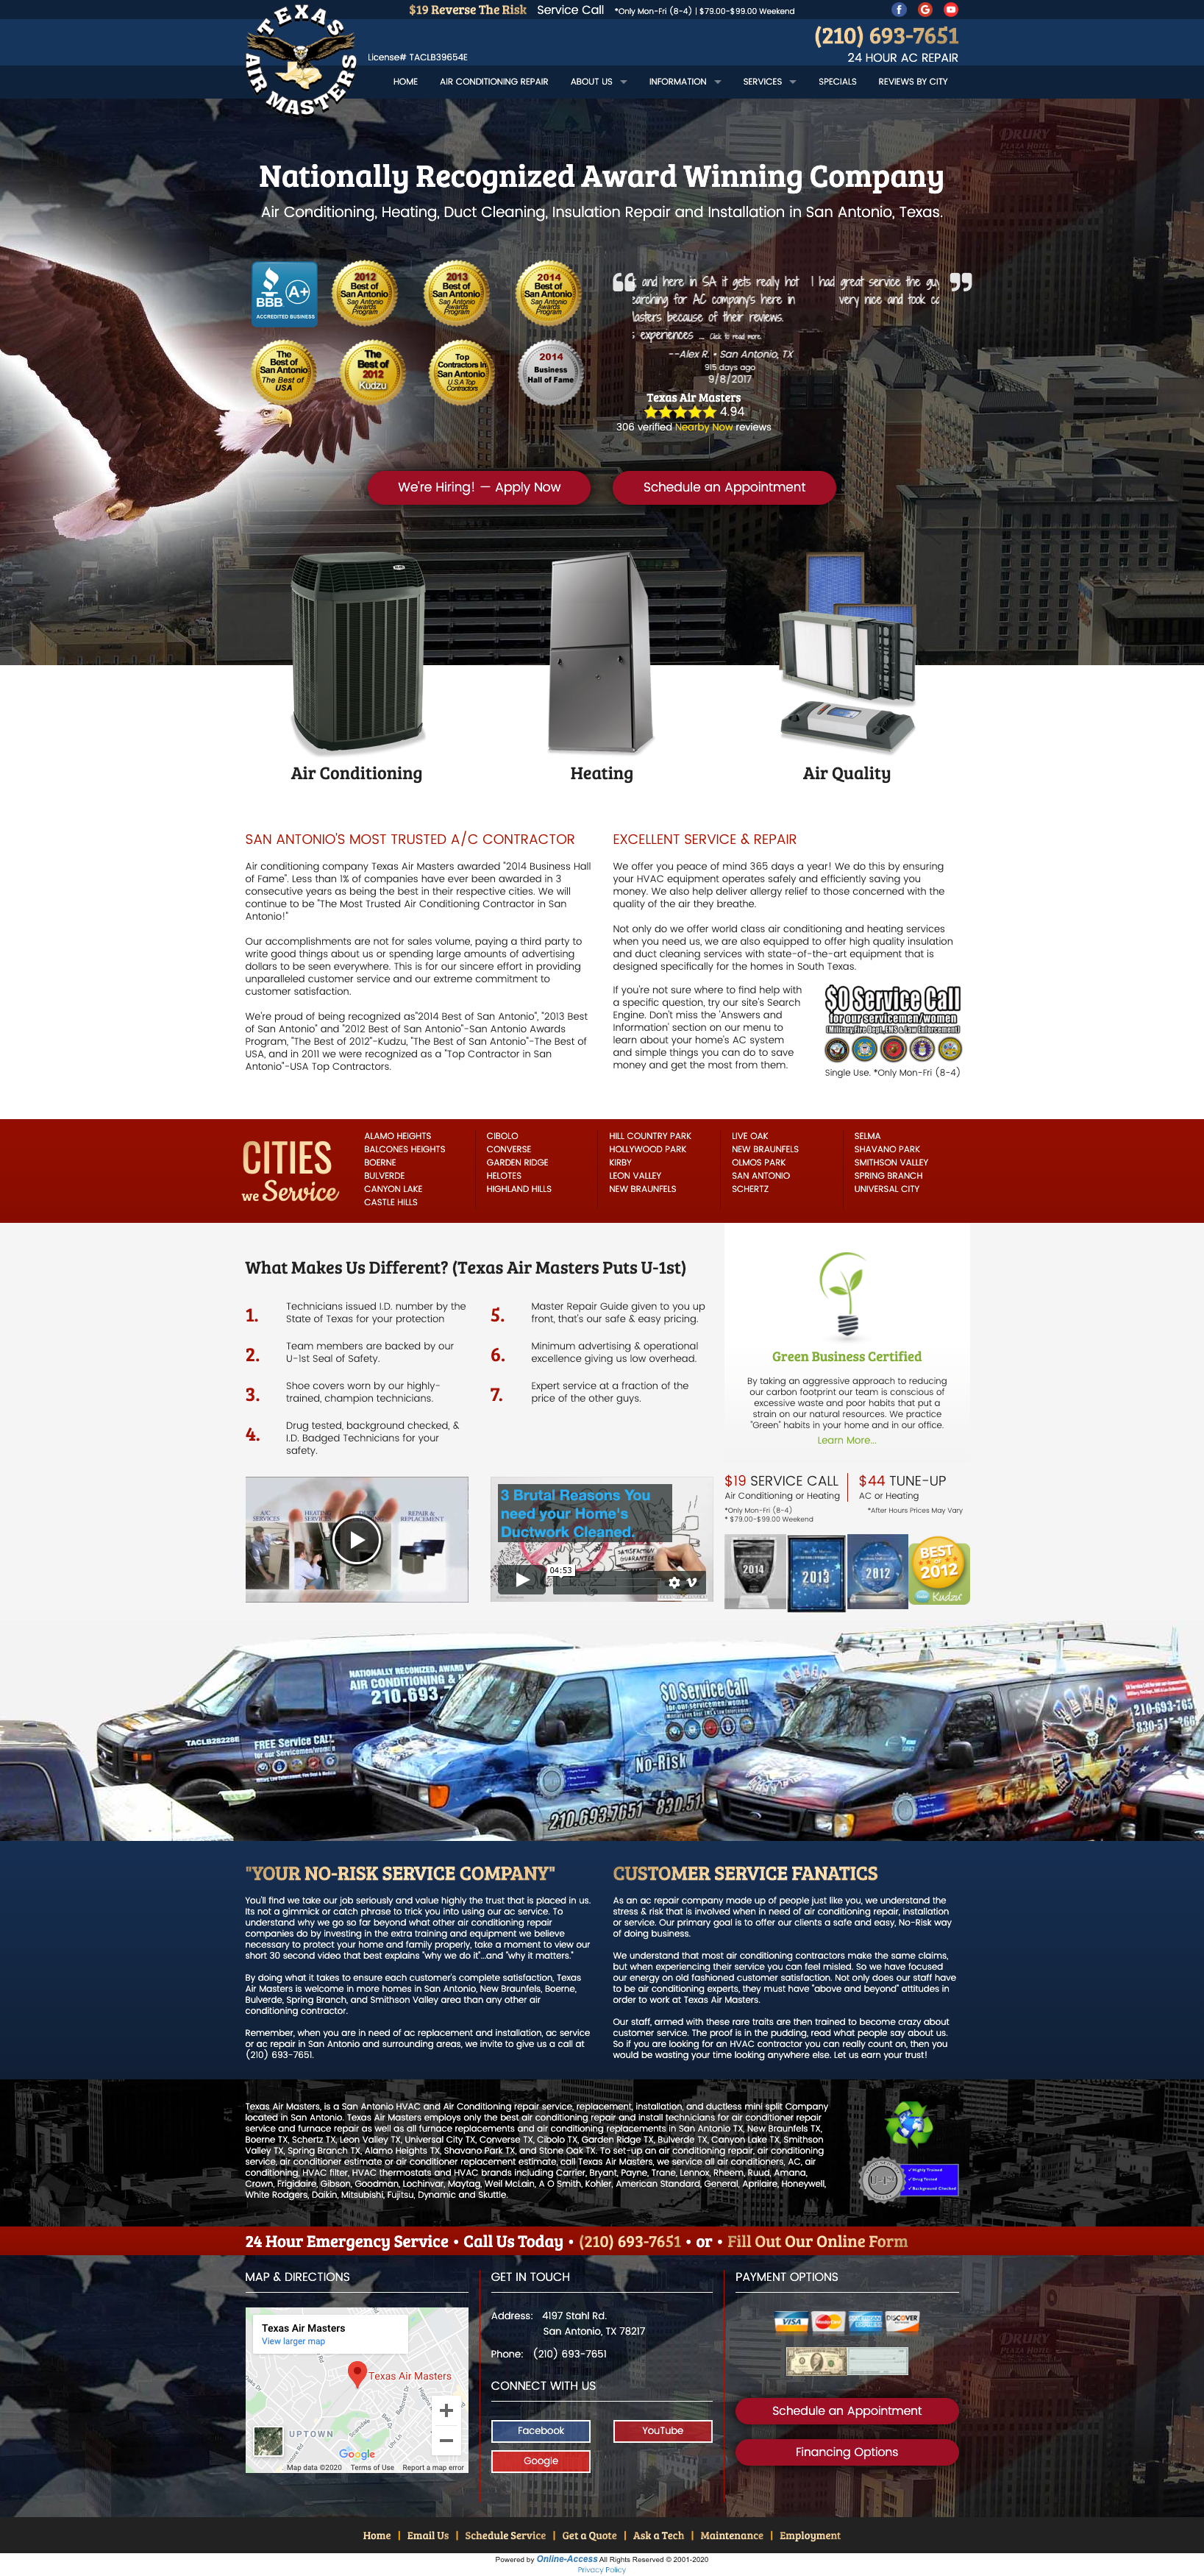 Branded Website Design in 2020 Heating and air